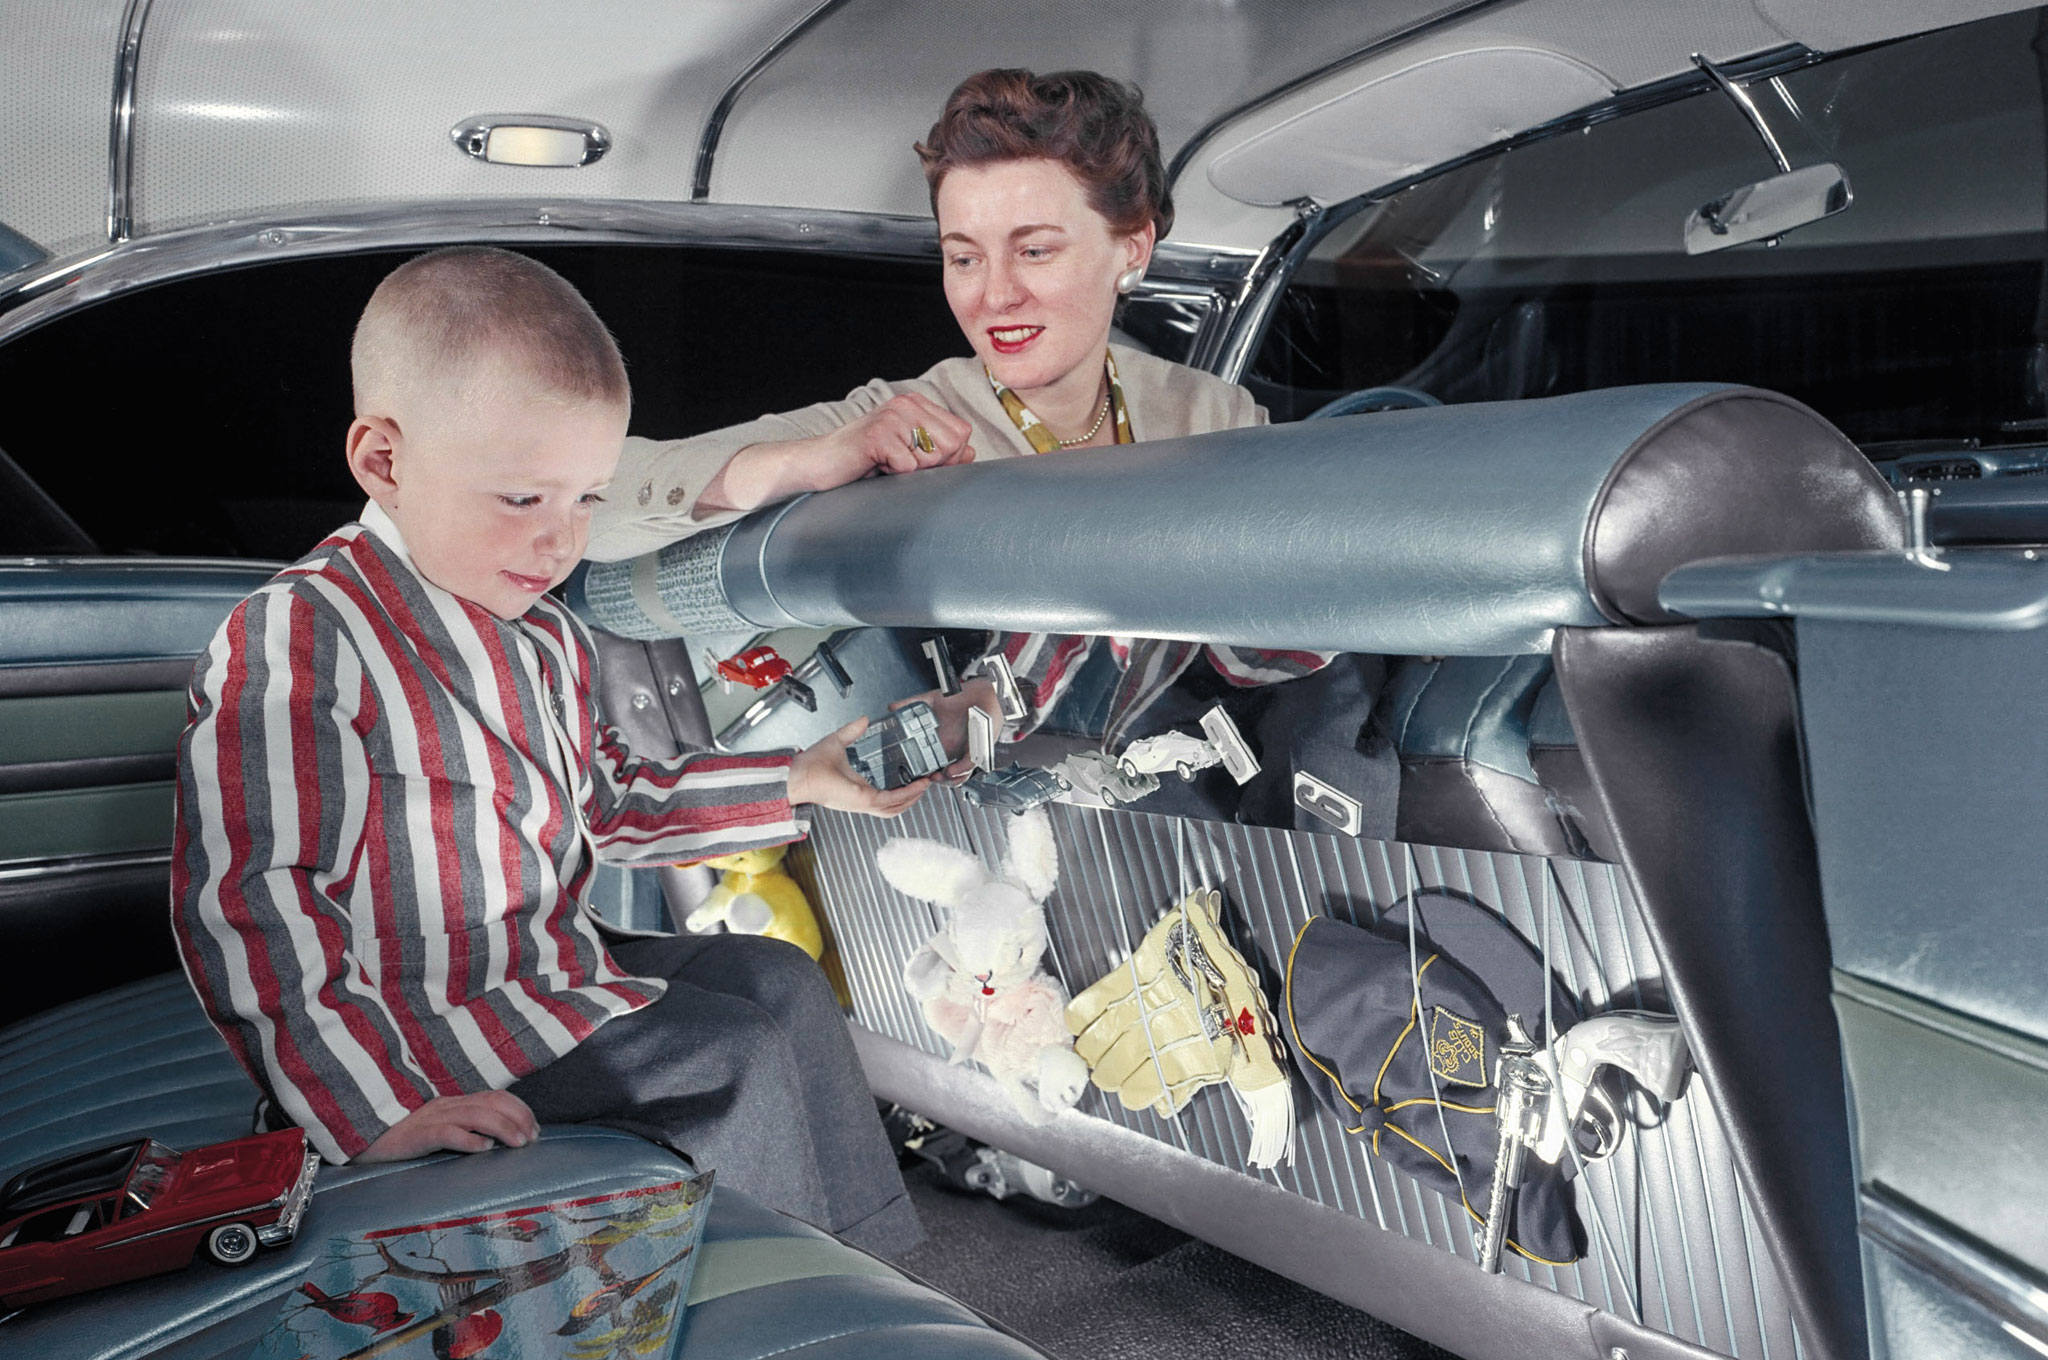 The child-centric interior on Peggy Sauer's Oldsmobile station wagon foreshadows modern minivans and crossovers.